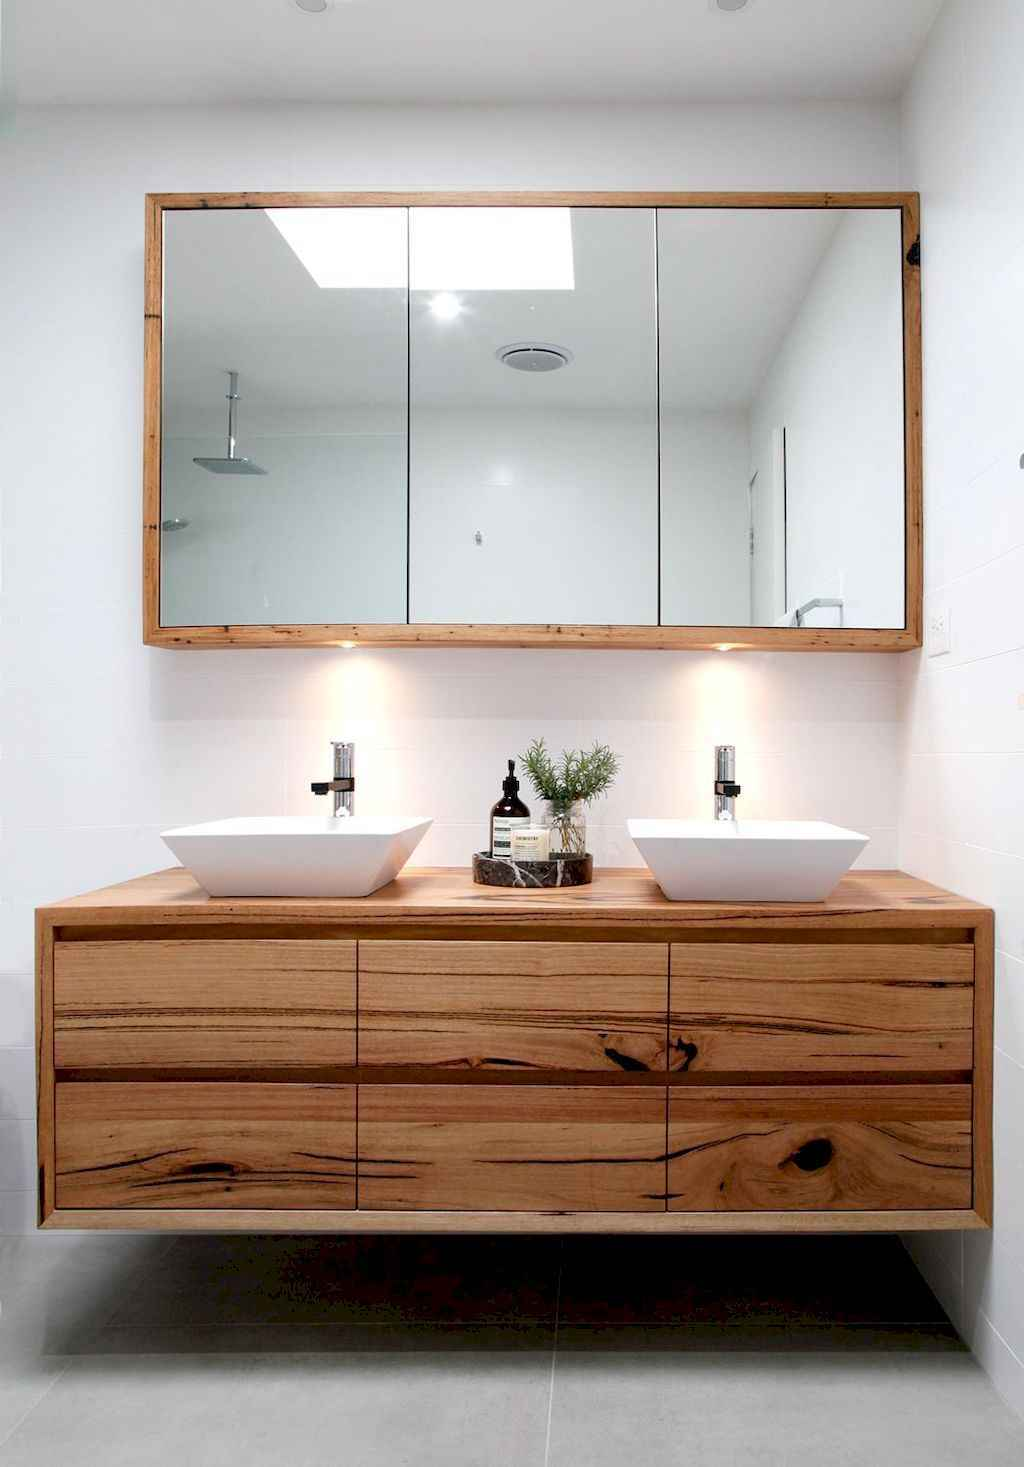 111 awesome small bathroom remodel ideas on a budget (10)